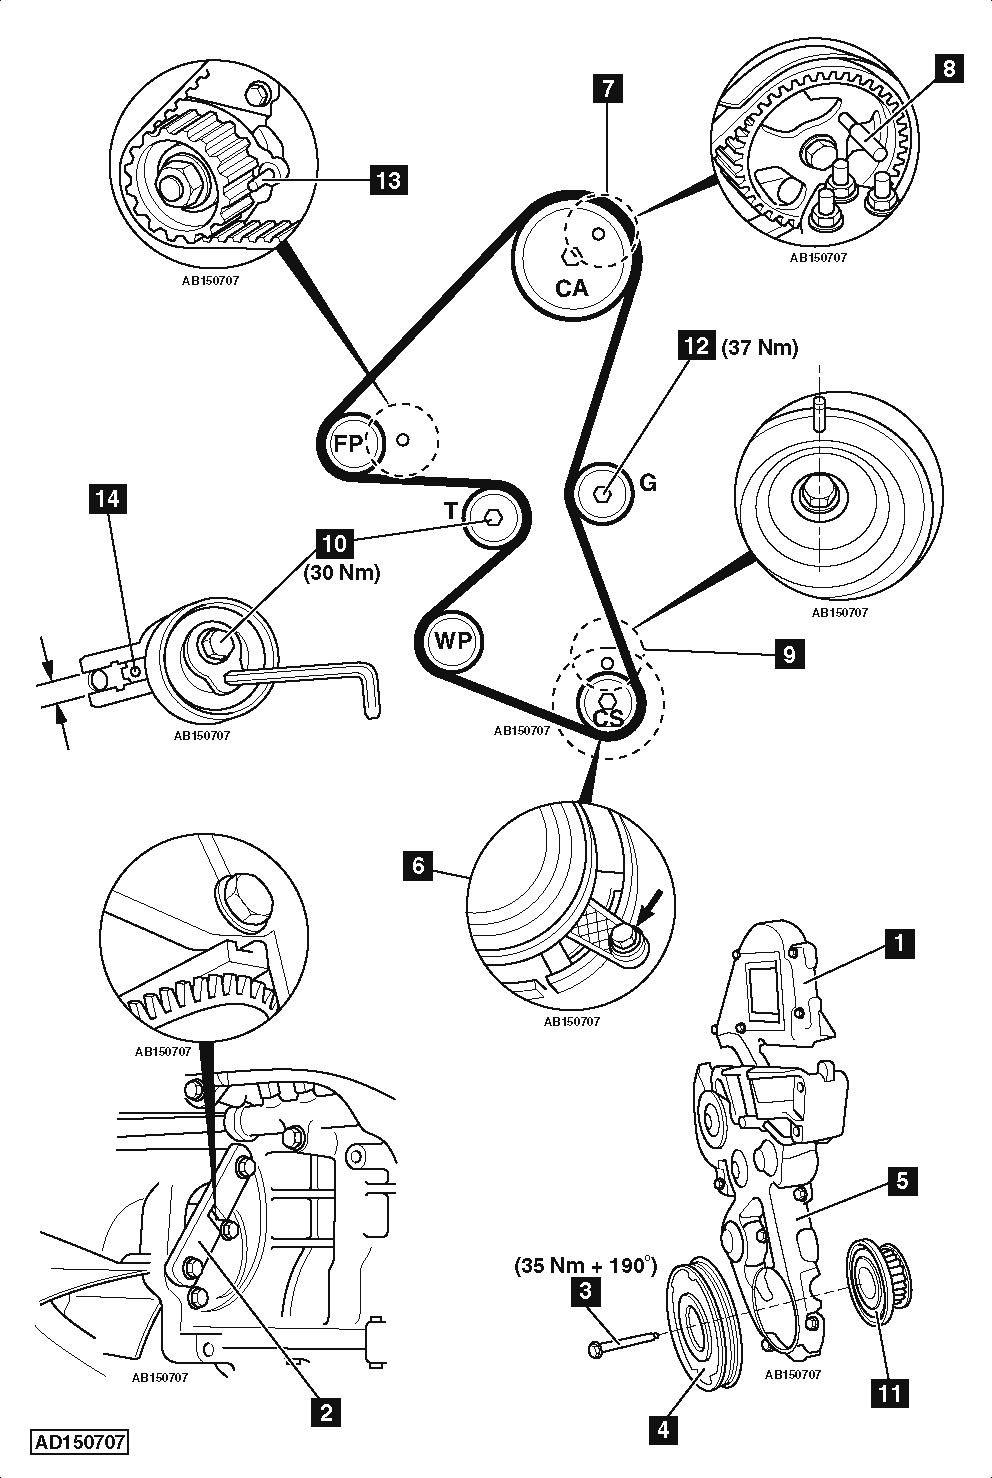 C4ch1gf2 further post3701442 as well P 0996b43f8037eed3 furthermore 2013 Chevy Malibu 2 4 Engine Diagram in addition 26afc Trying Replace Knock Sensor 2002 Acura Mdx. on coolant sensor replacement